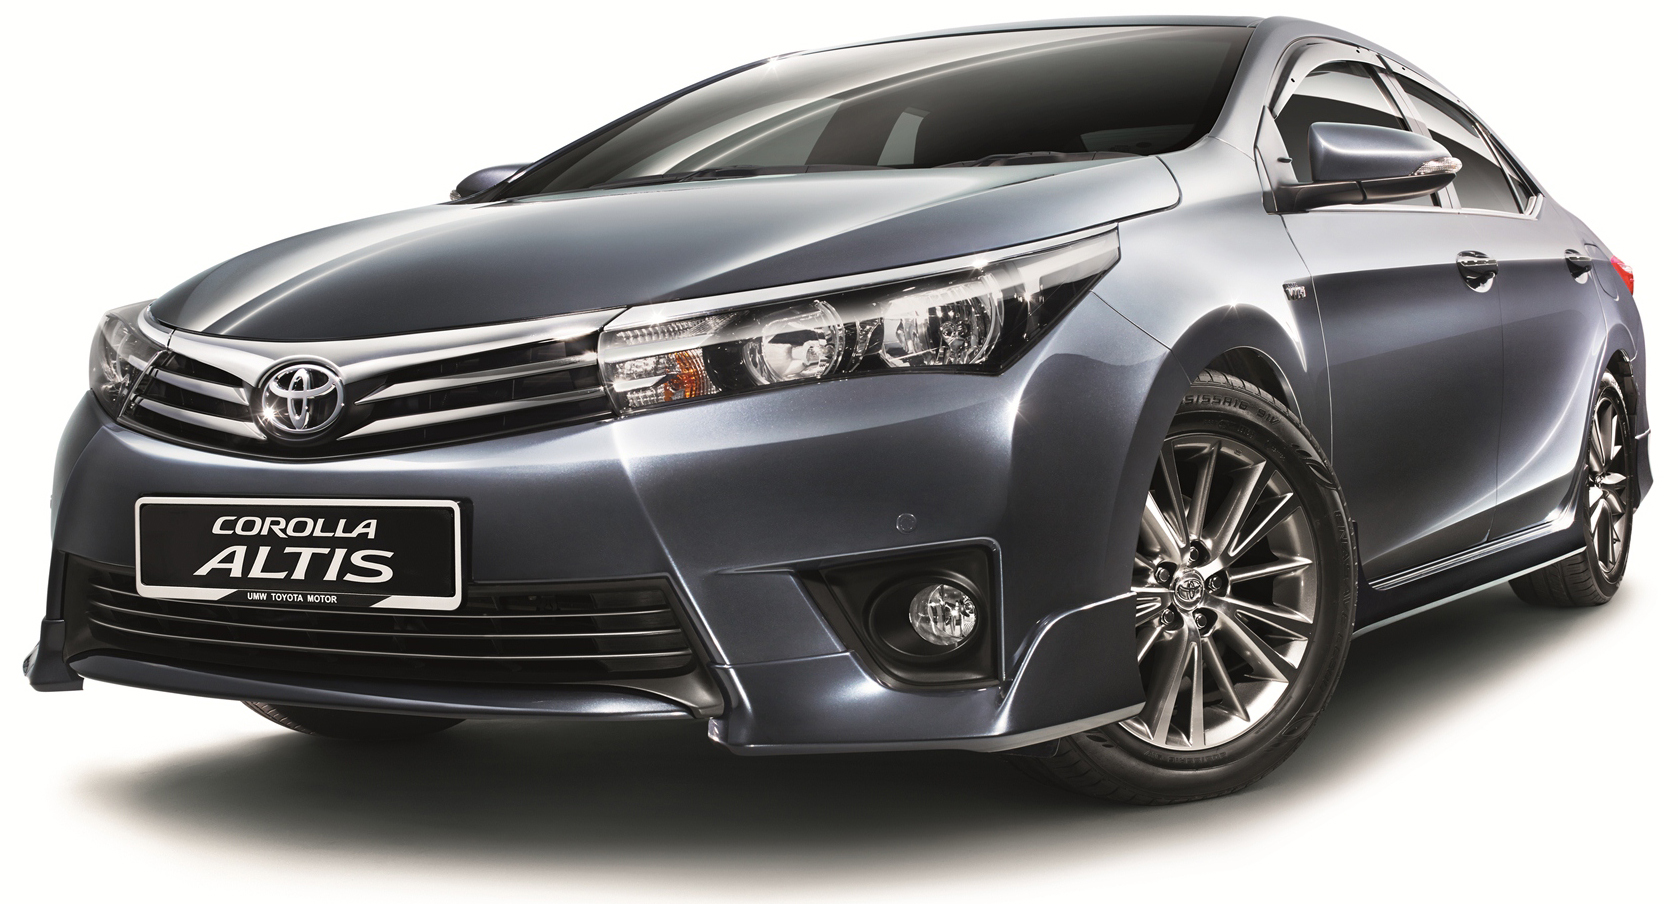 Toyota corolla altis 1 8g replaces 2 0g in lineup image 281056